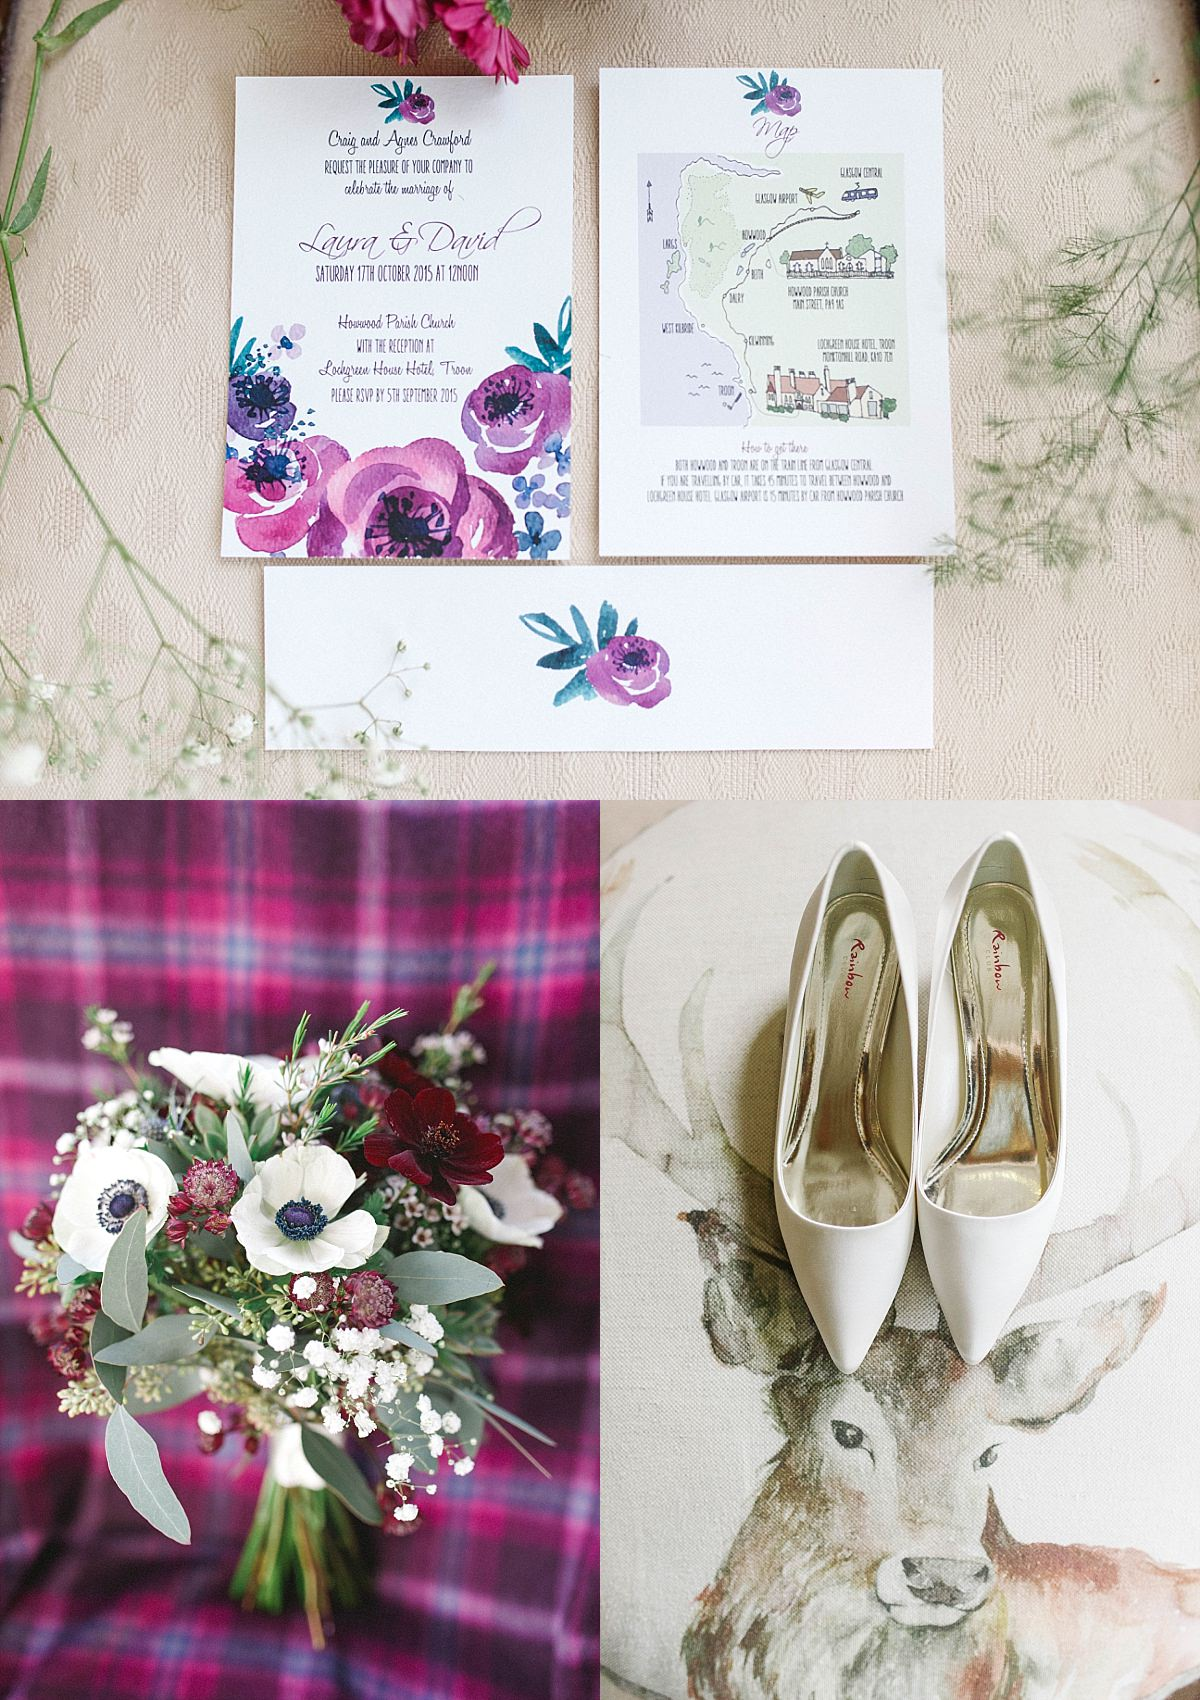 Autumn wedding Scotland,Chantal Lachance-Gibson Photography /destination wedding photographers,Fine Art Wedding Photographers Scotland,Loch Green Wedding,The Gibsons,natural wedding photographers Glasgow,romantic photographers Scotland,two wedding photographers scotland,